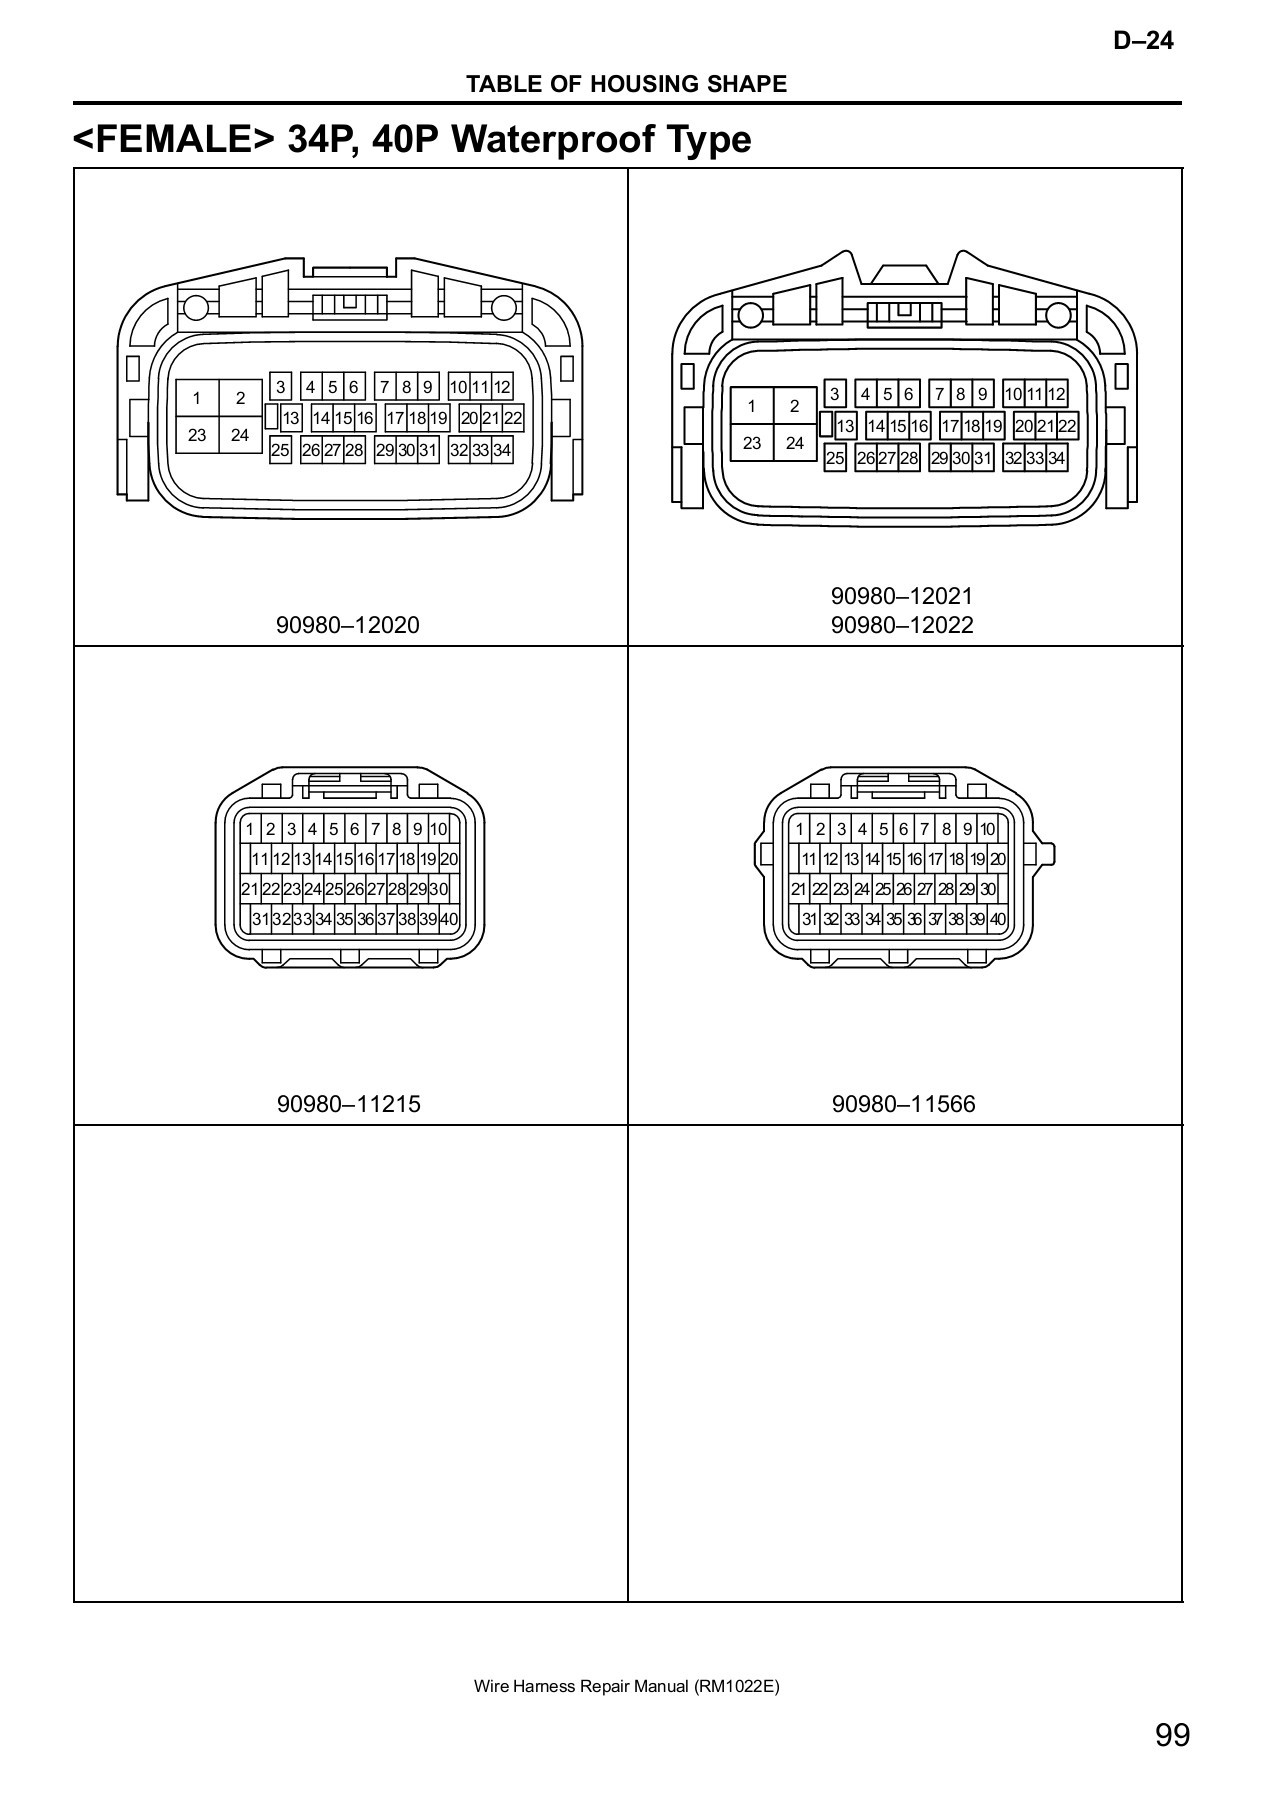 hight resolution of toyota wiring repair manual pdfdrive com pages 101 150 text version fliphtml5